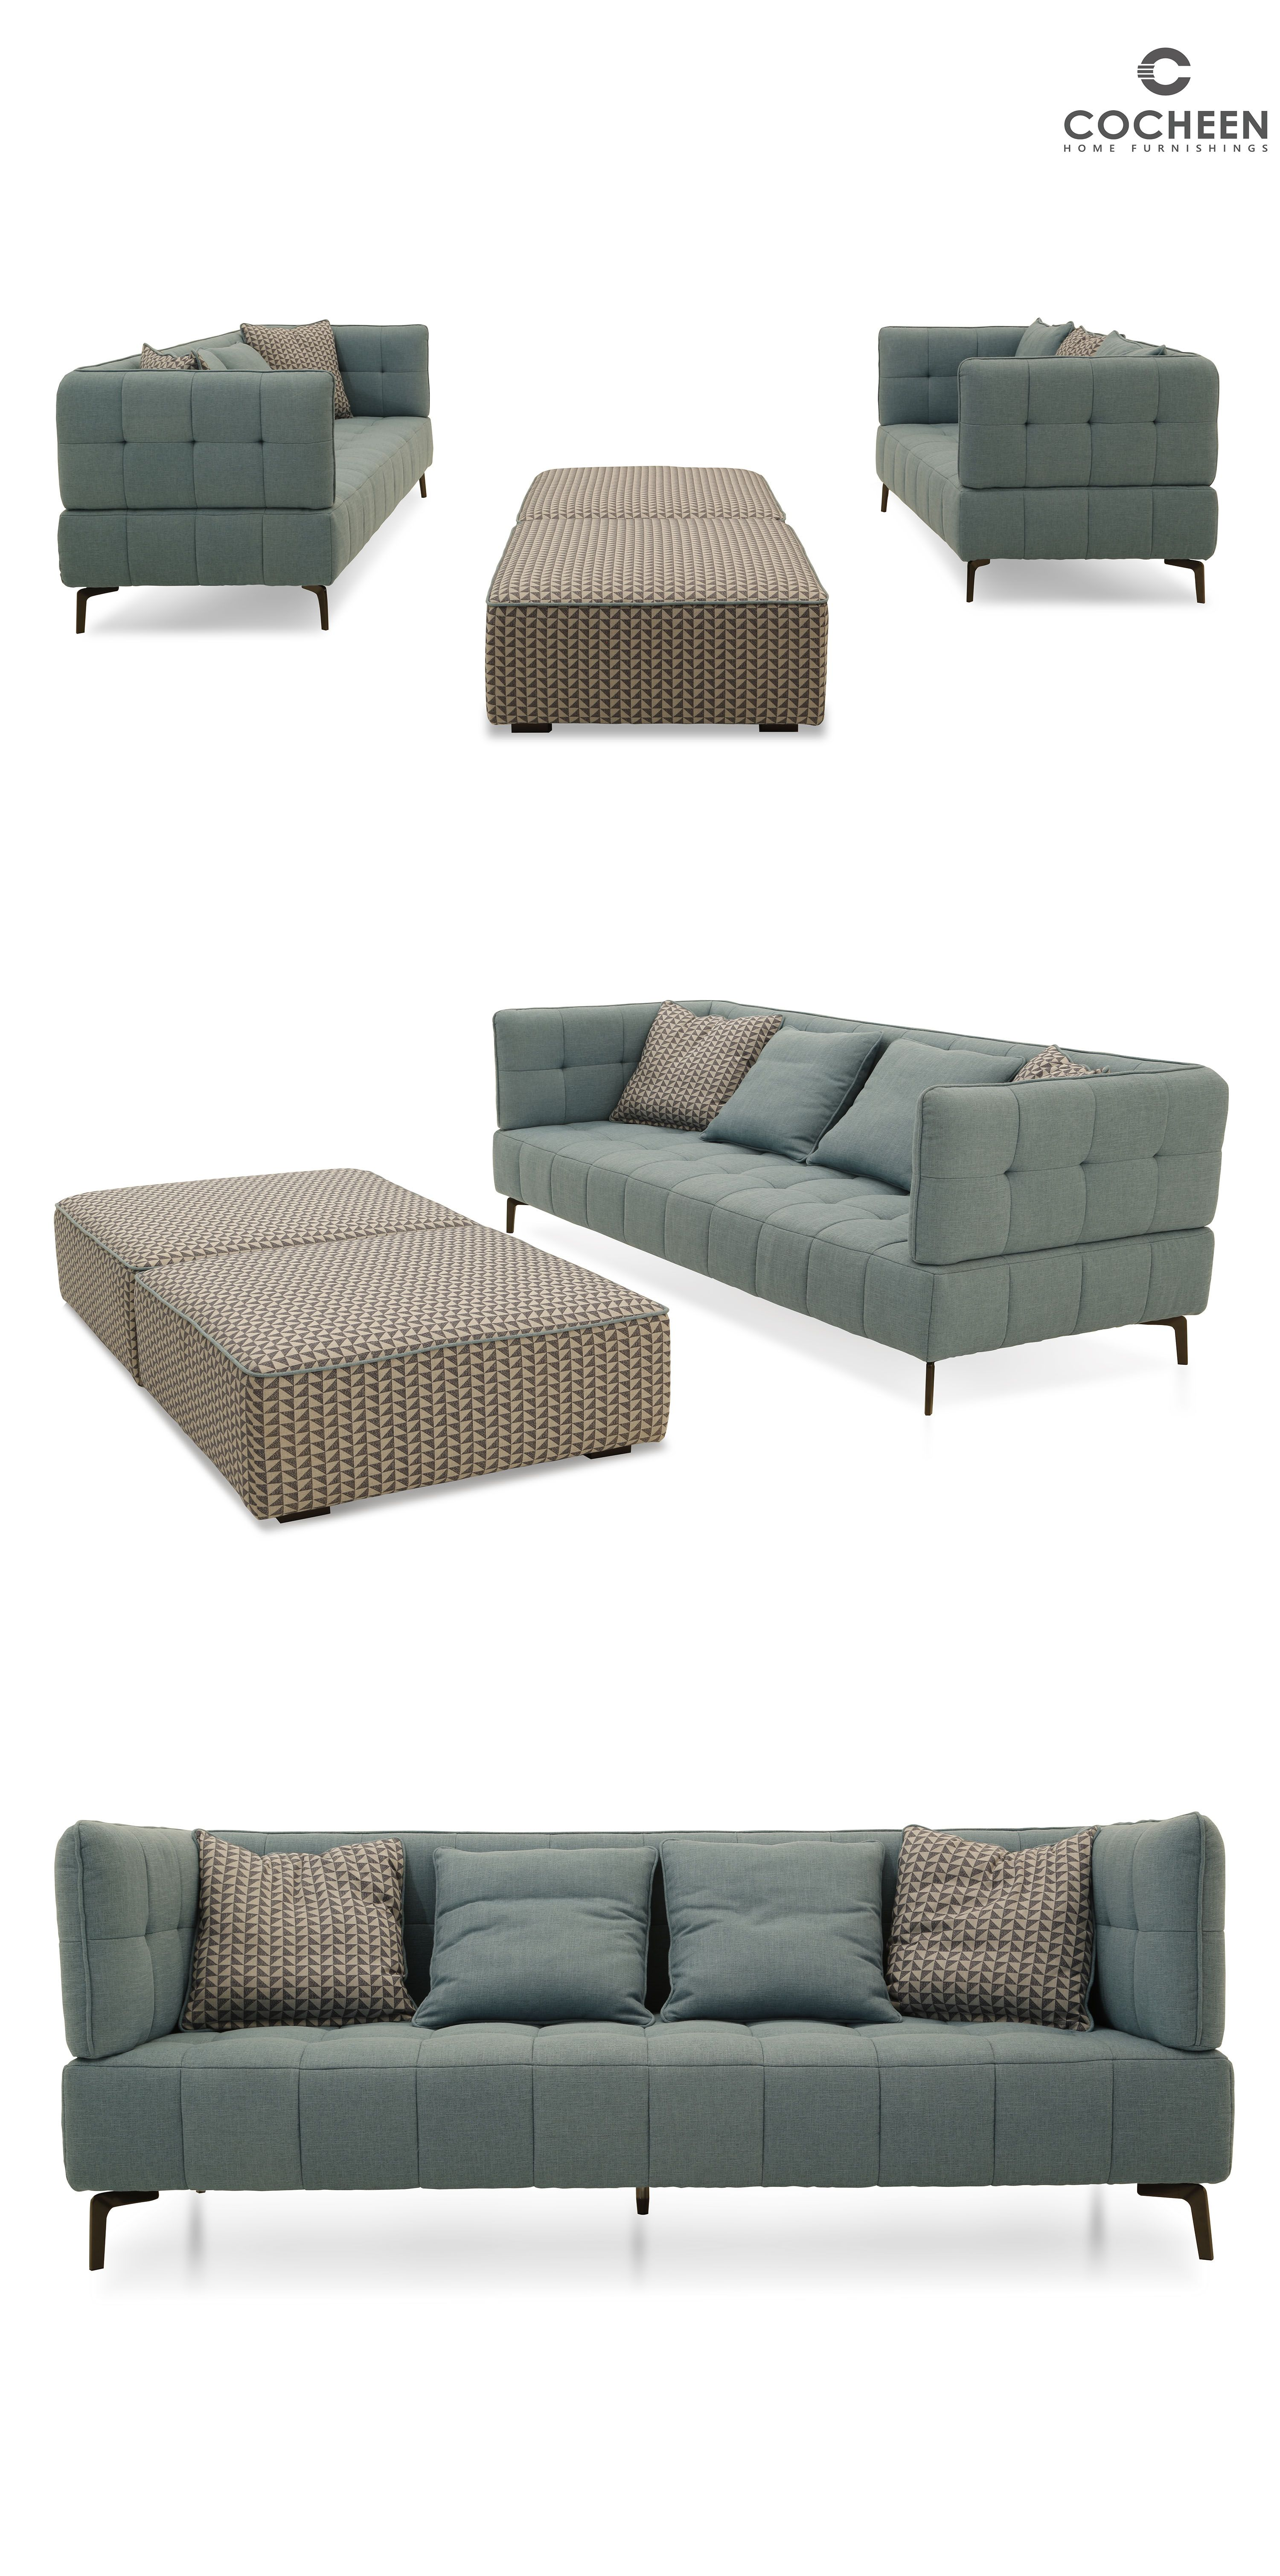 contemporary sofa furniture best selling products sofa sofa rh pinterest com contemporary garden sofa furniture contemporary furniture leather sofa